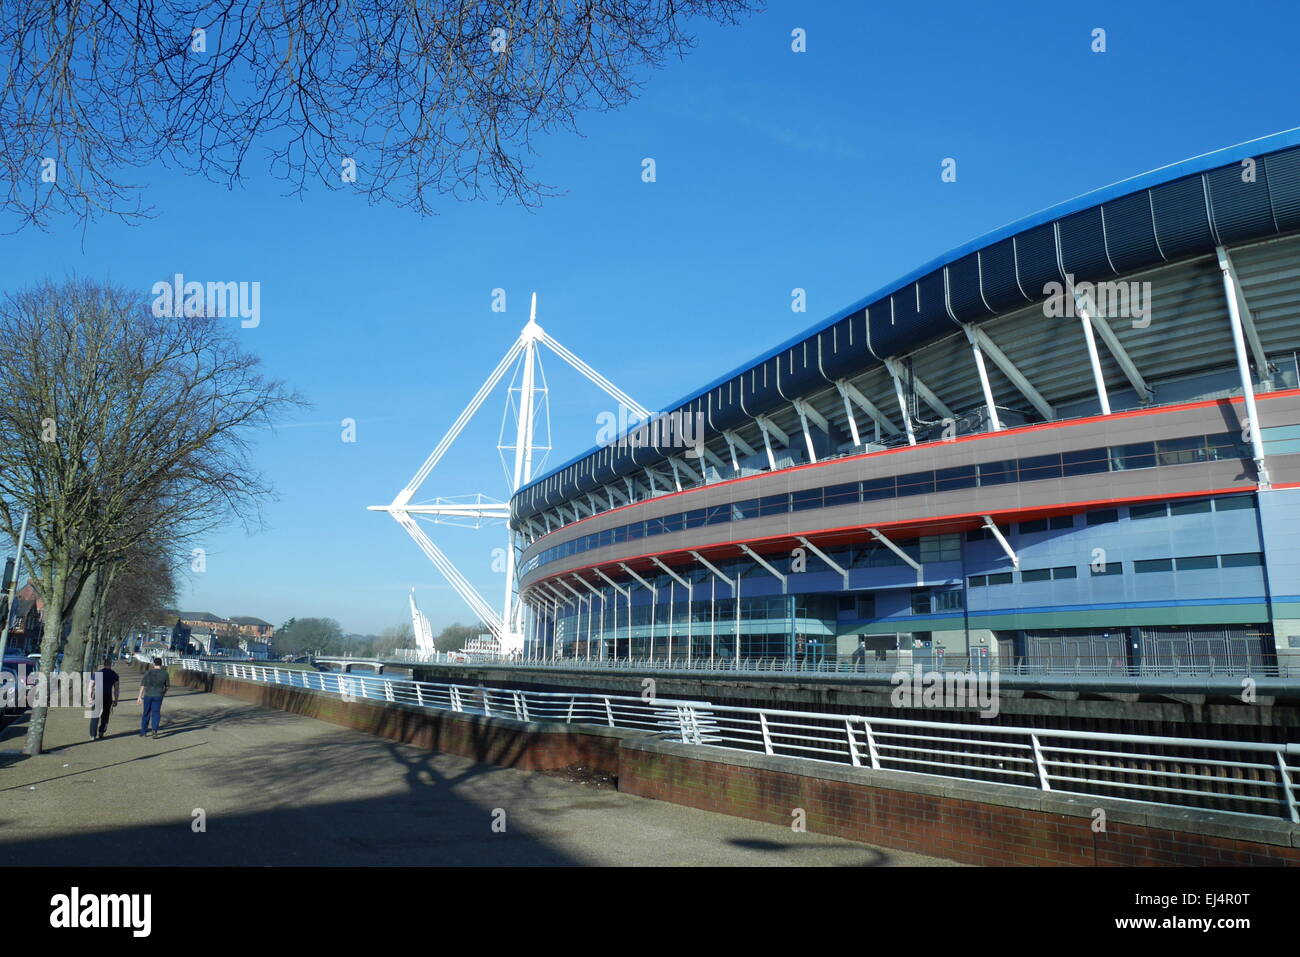 Principality Stadium in winter, overlooking the River Taff, Cardiff, South Glamorgan, Wales, UK - Stock Image